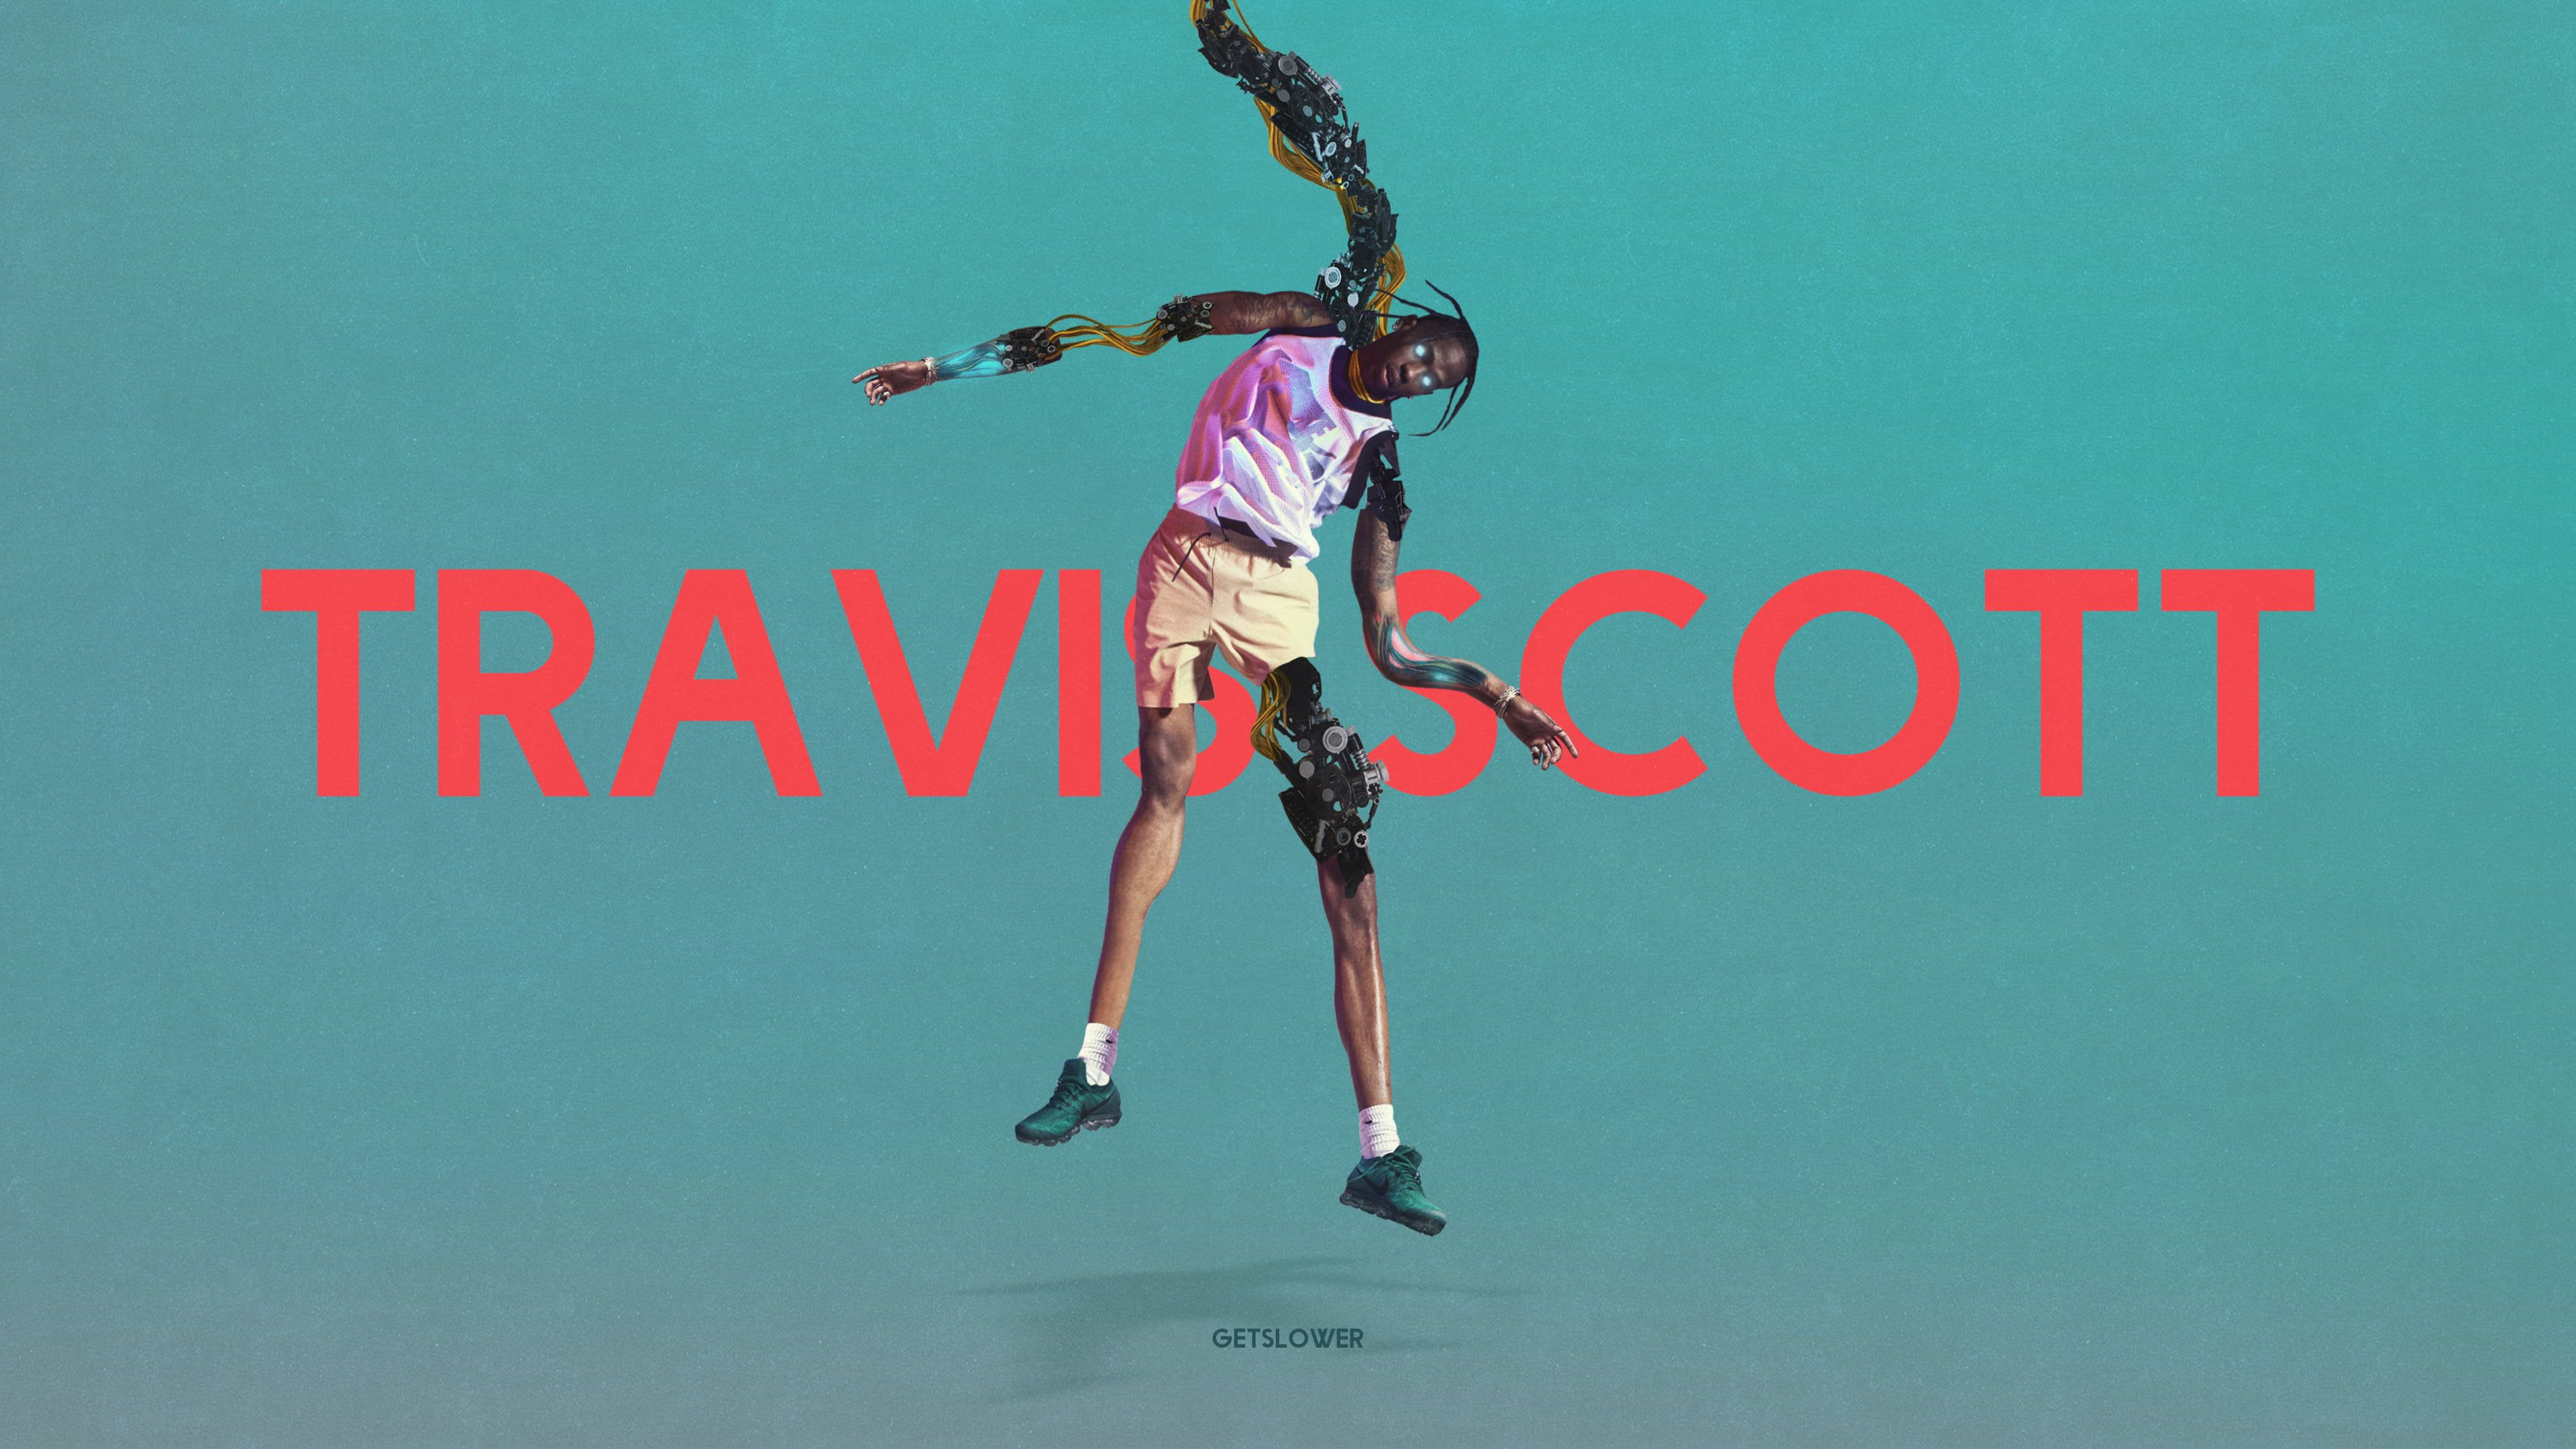 Travis Scott Kanye West 4k Wallpaper Hdwallpaper Desktop Travis Scott Kanye West Travis Scott Wallpapers